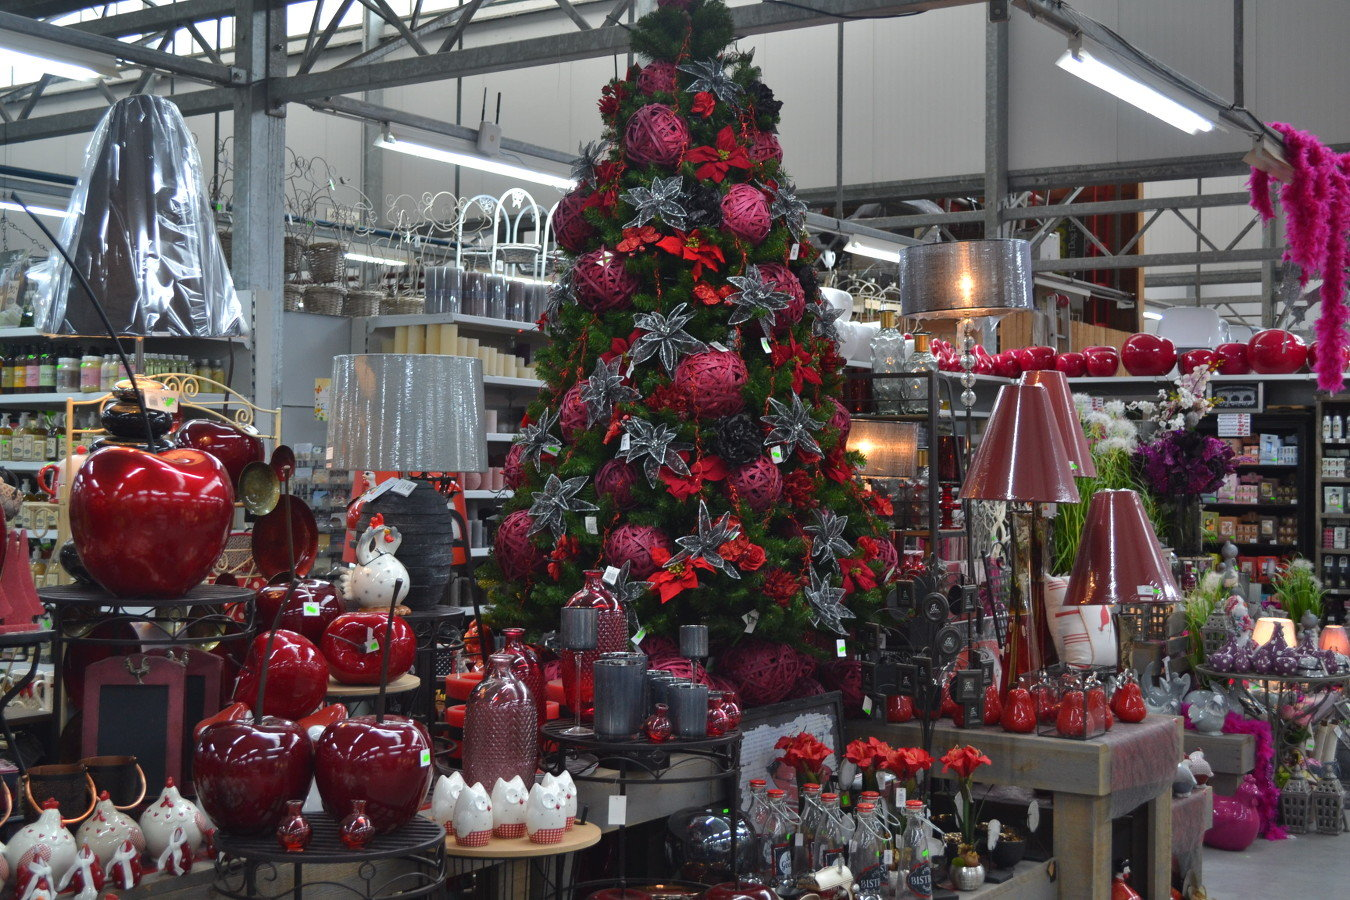 Decoration Noel Magasin Meilleures Images D 39 Inspiration